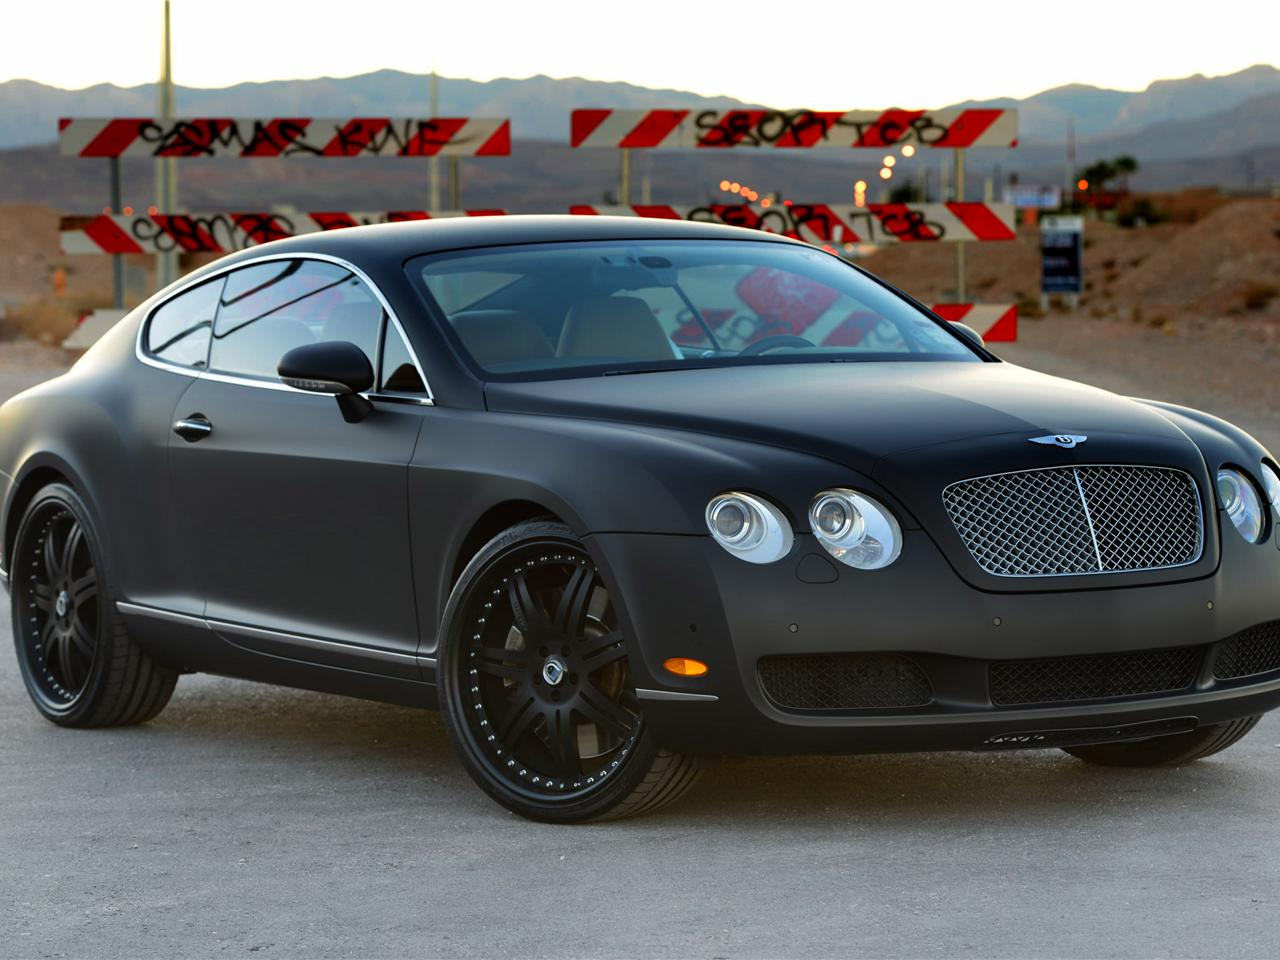 2005 Bentley Continental GT Owners Manual